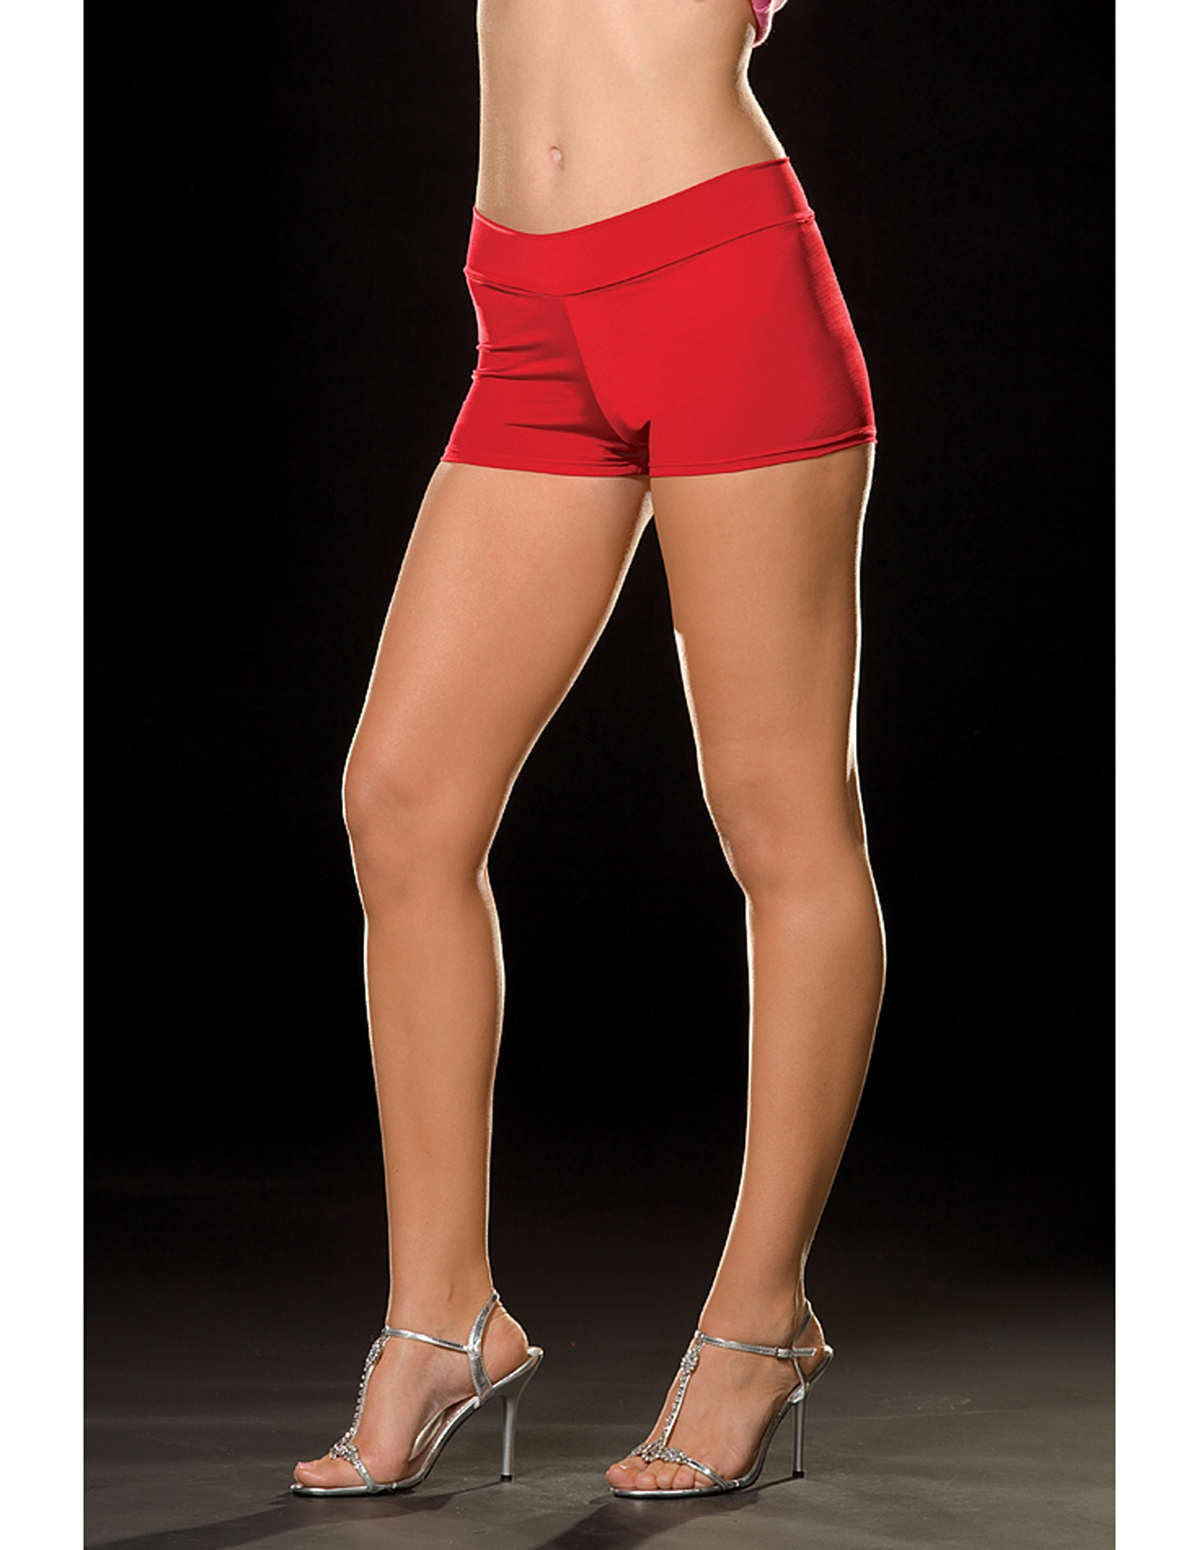 Roxie Hot Short - Reg & Plus